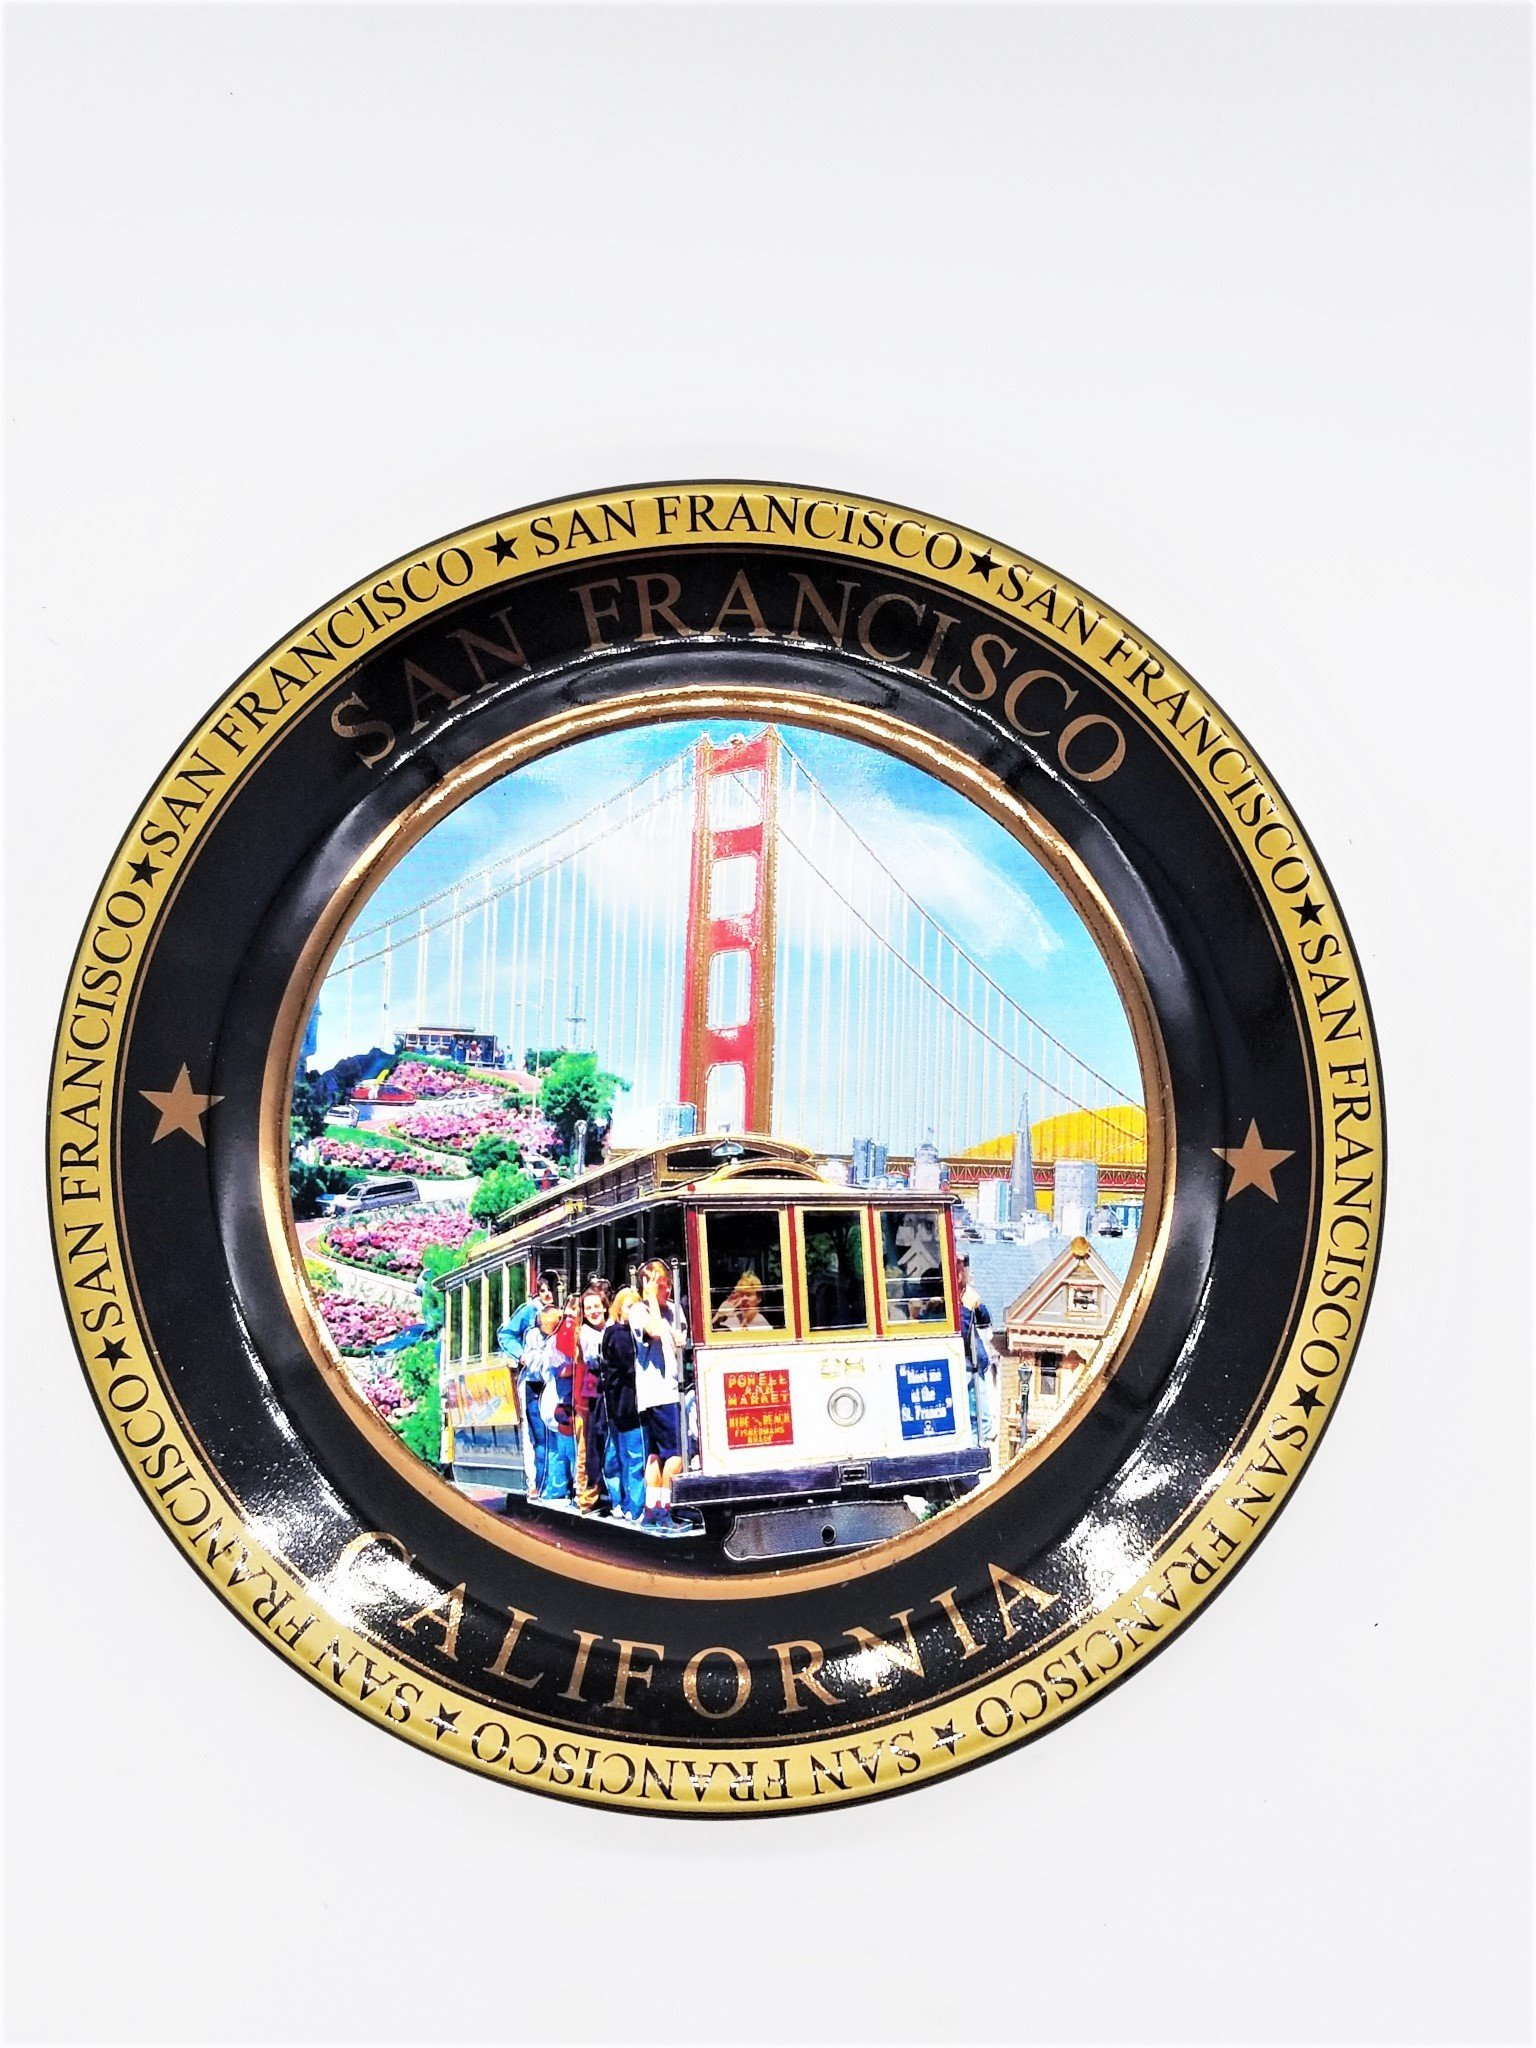 (44 7/18) San Francisco Color Collage Collectors Souvenir Plate 8'' Golden Gate Bridge Cable Car With Copyrighted CA Bear Magnet by City Coffee Mugs